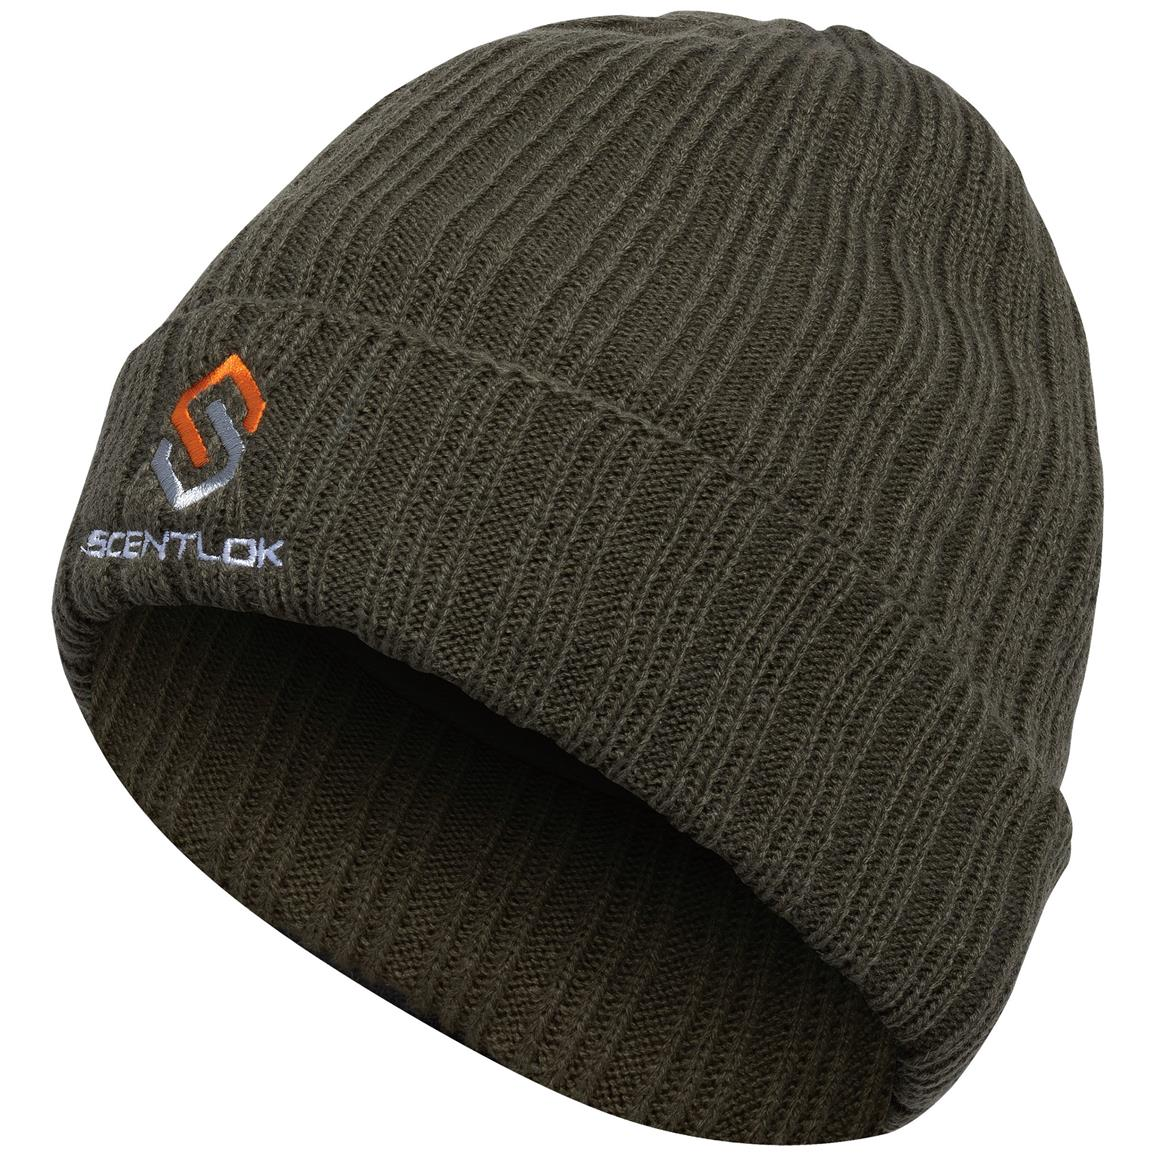 Scentlok Carbon Alloy Knit Beanie, Green